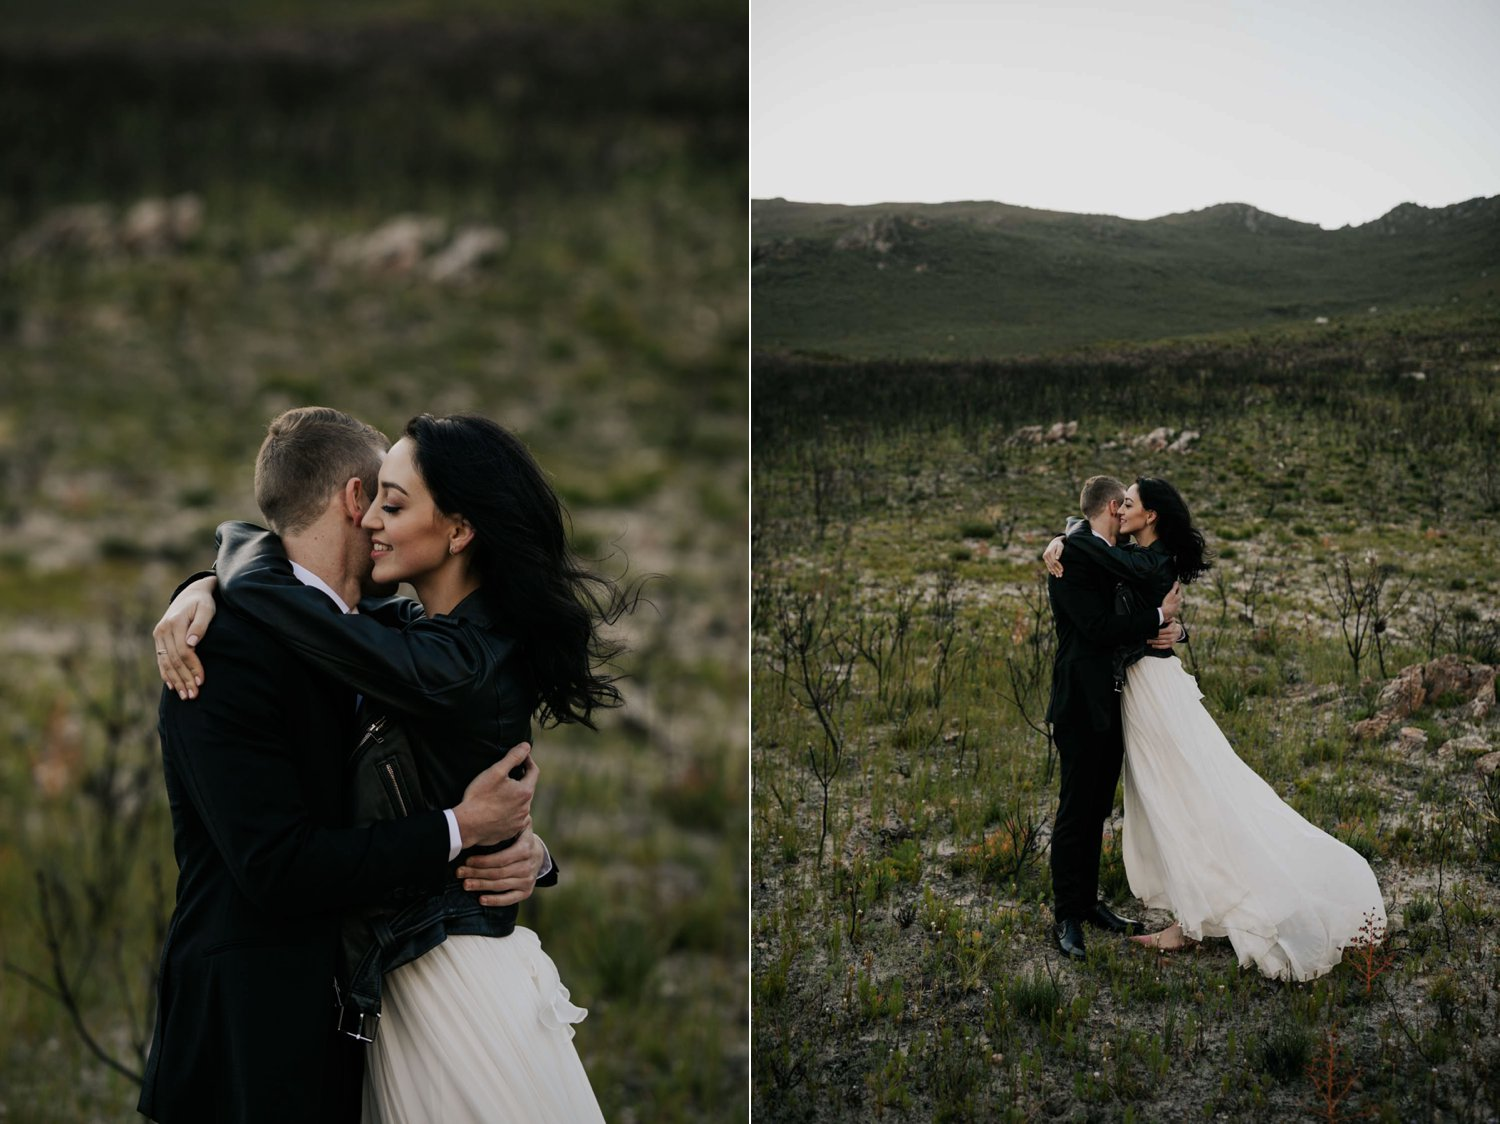 Bride Wearing White Dress And Leather Jacket